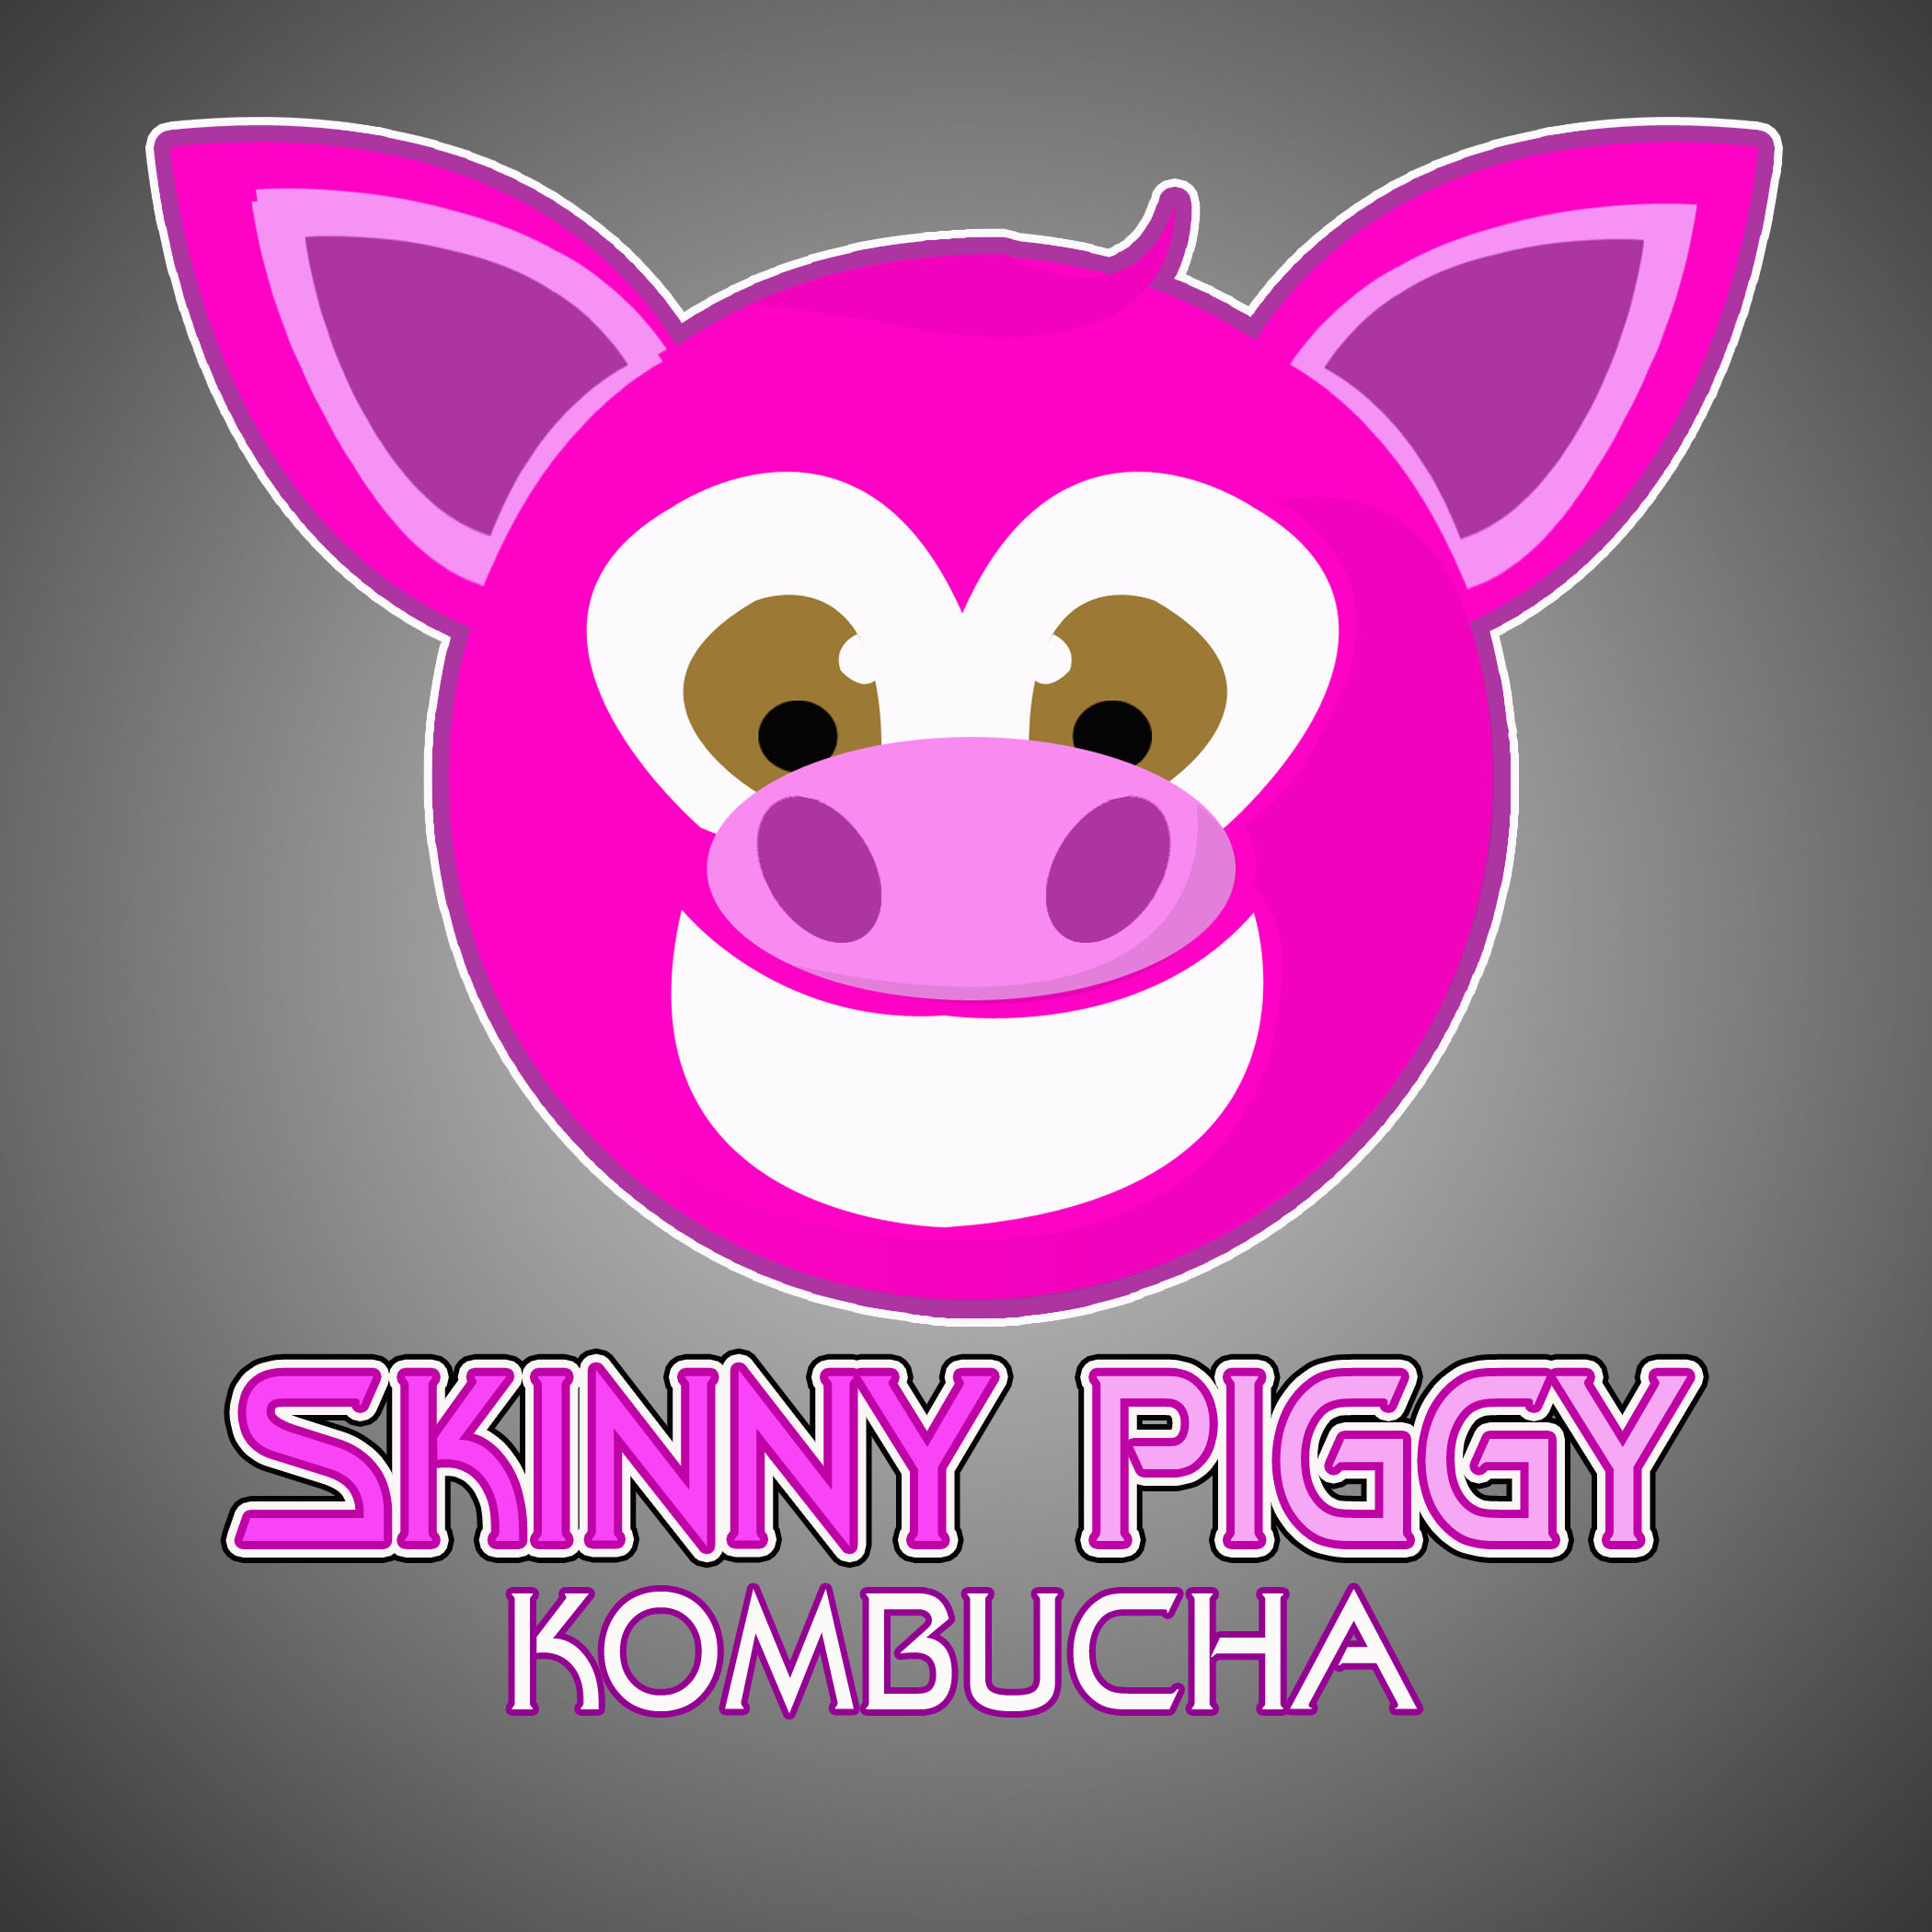 Logo Design by Jesther Jordan Minor - Entry No. 72 in the Logo Design Contest Fun Logo Design for Skinny Piggy.